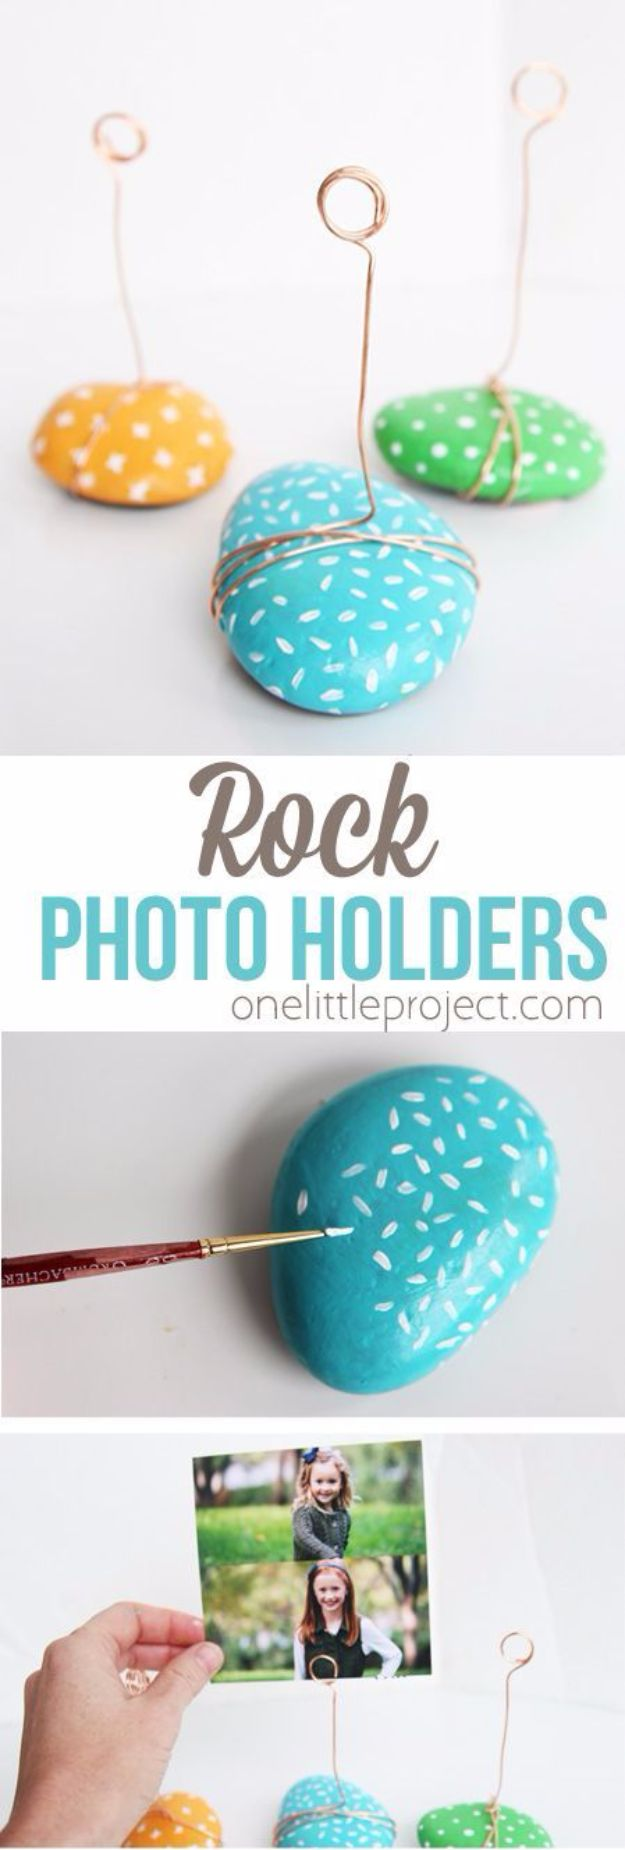 Crafts for Teens to Make and Sell - DIY Rock Photo Holder - Cheap and Easy DIY Ideas To Make For Extra Money - Best Things to Sell On Etsy, Dollar Store Craft Ideas, Quick Projects for Teenagers To Make Spending Cash - DIY Gifts, Wall Art, School Supplies, Room Decor, Jewelry, Fashion, Hair Accessories, Bracelets, Magnets #teencrafts #craftstosell #etsyideass